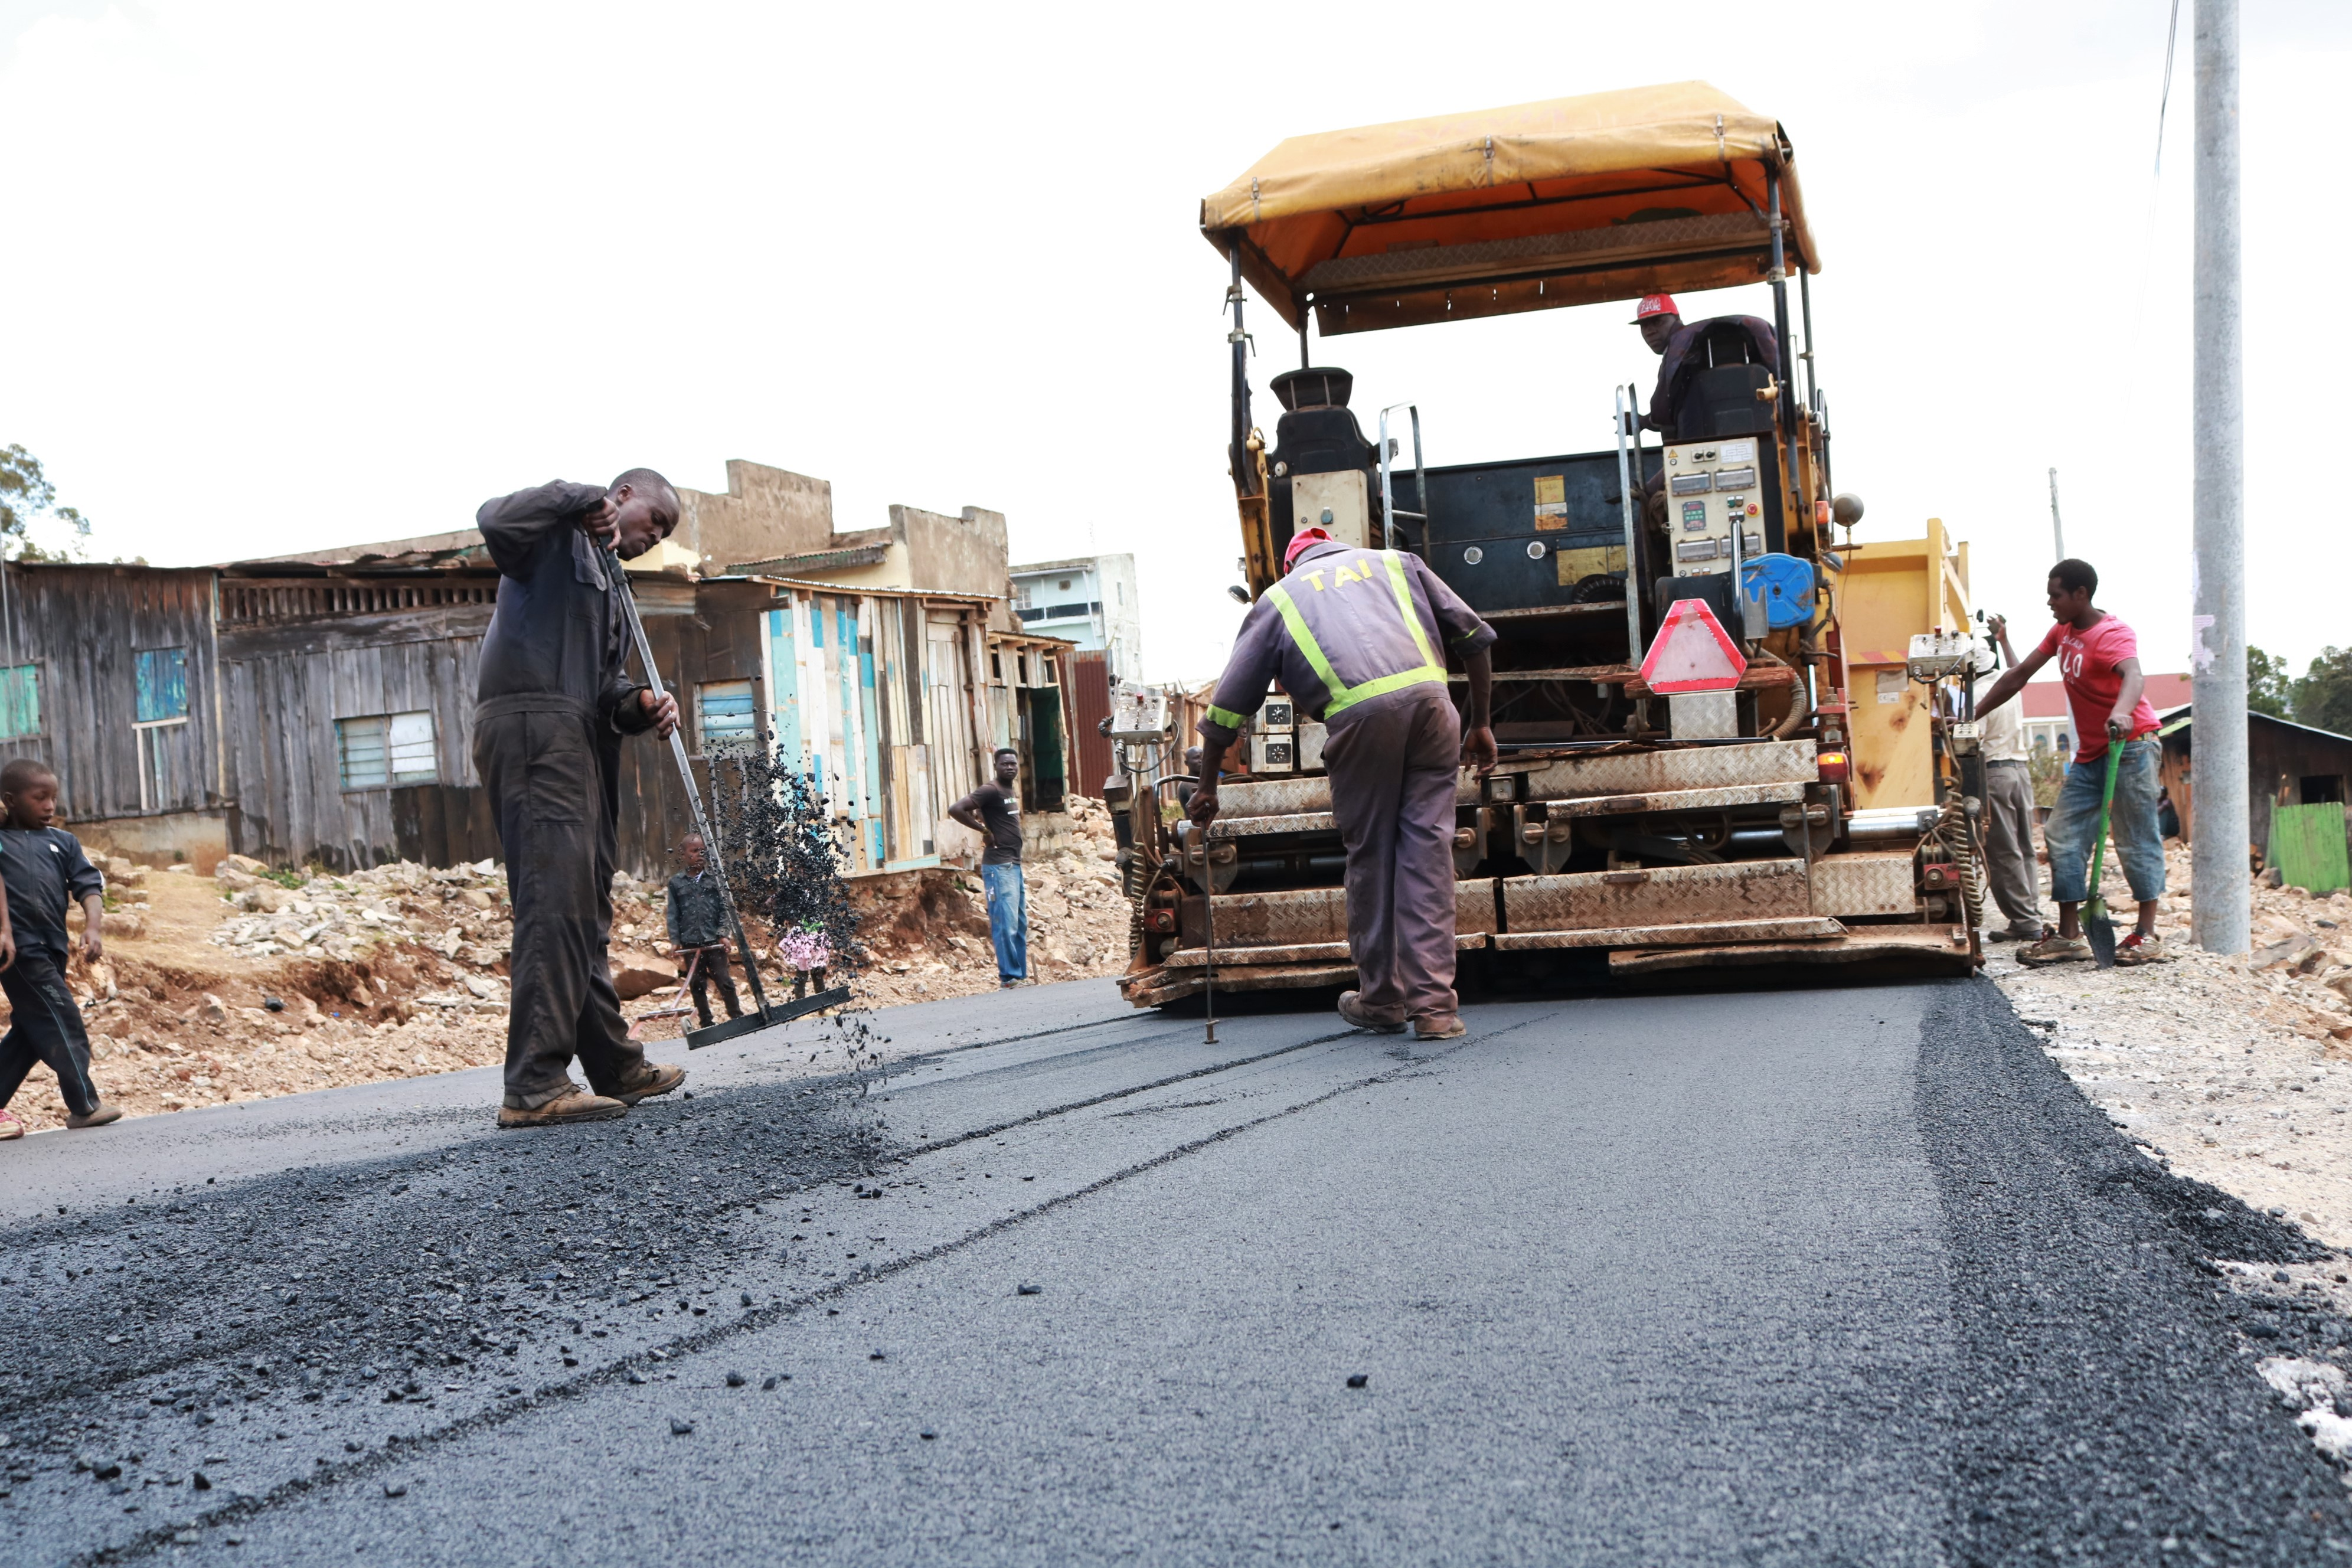 Fixing infrastructure for economic growth